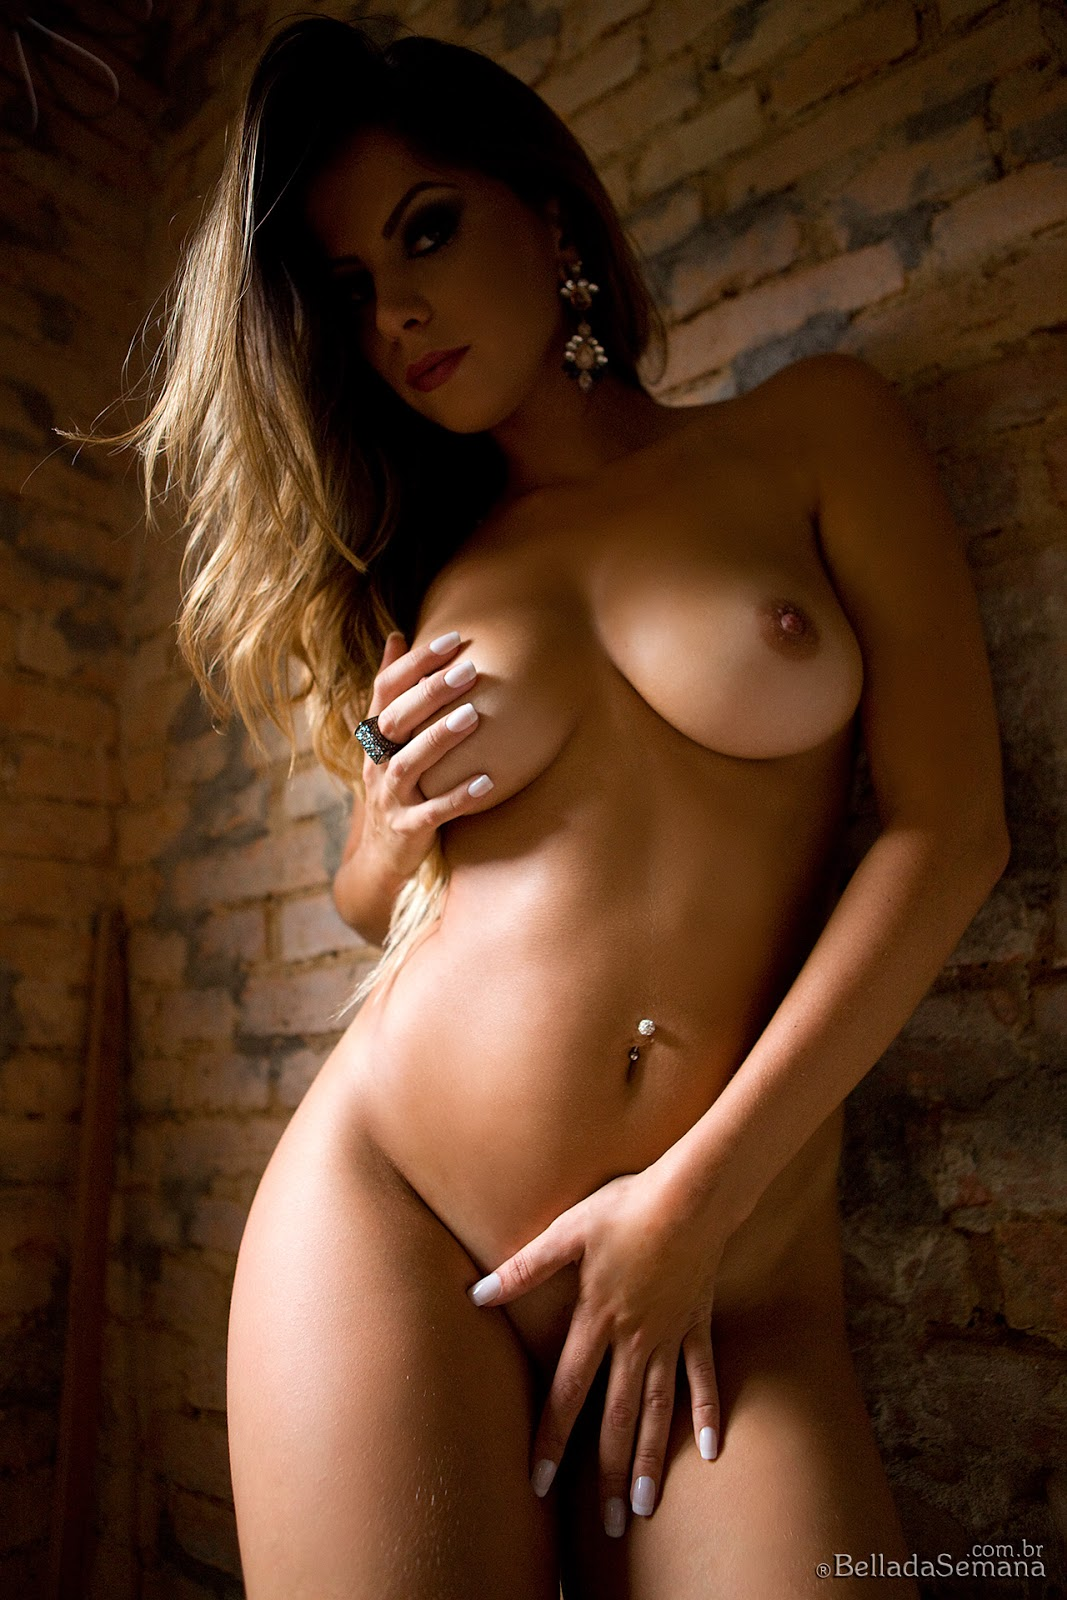 Hot sexy naked brazilian women share